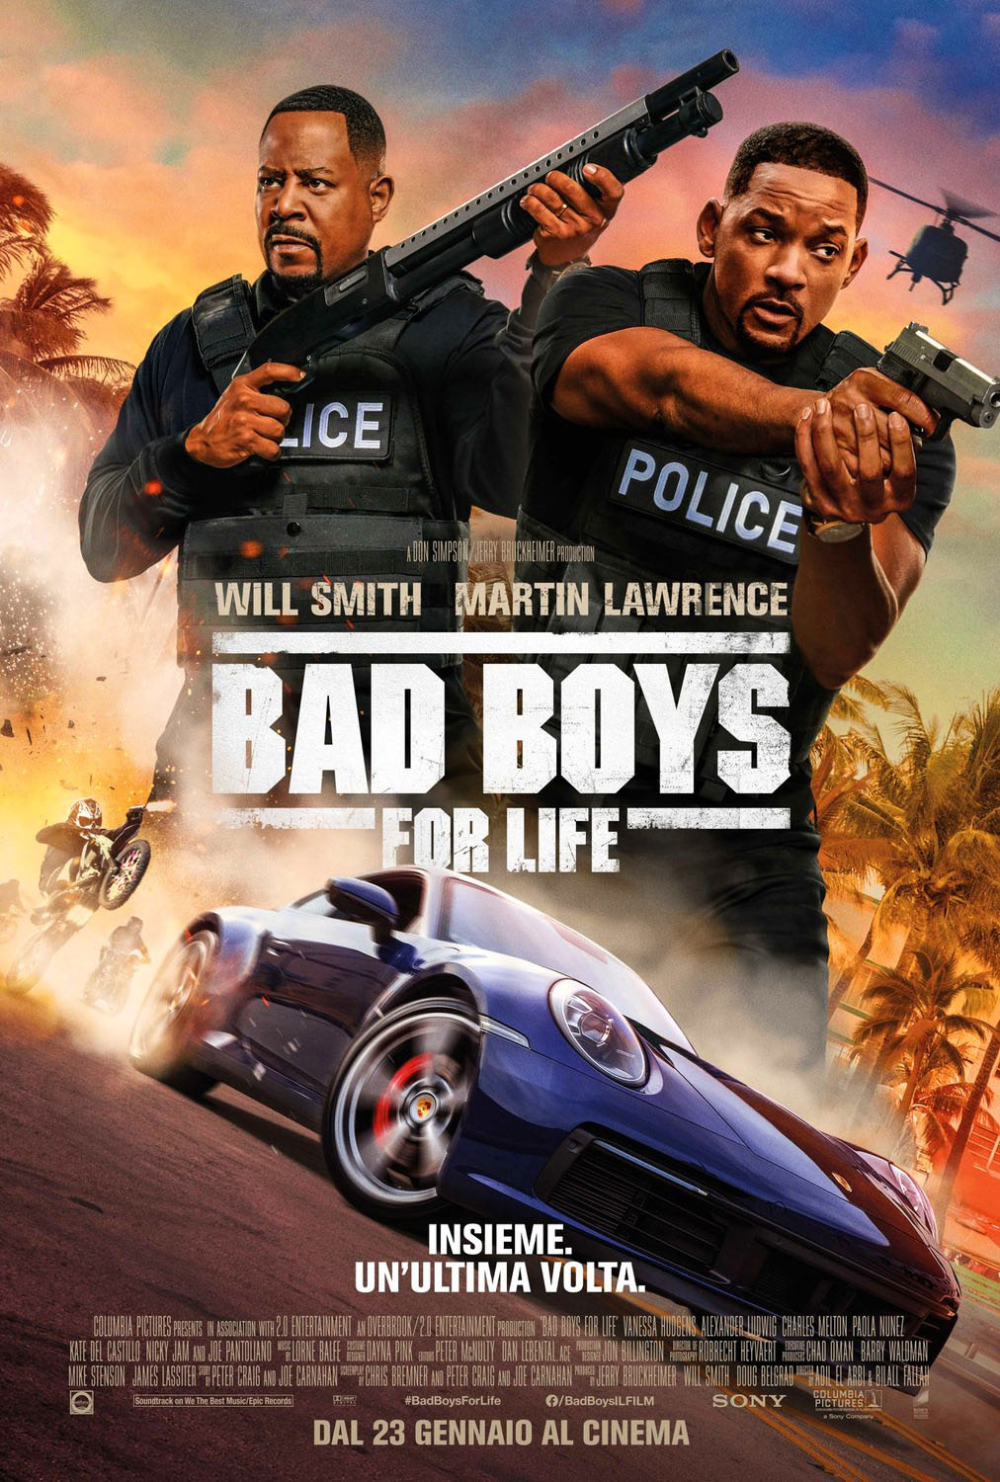 Bad Boys For Life International Poster on Behance in 2020